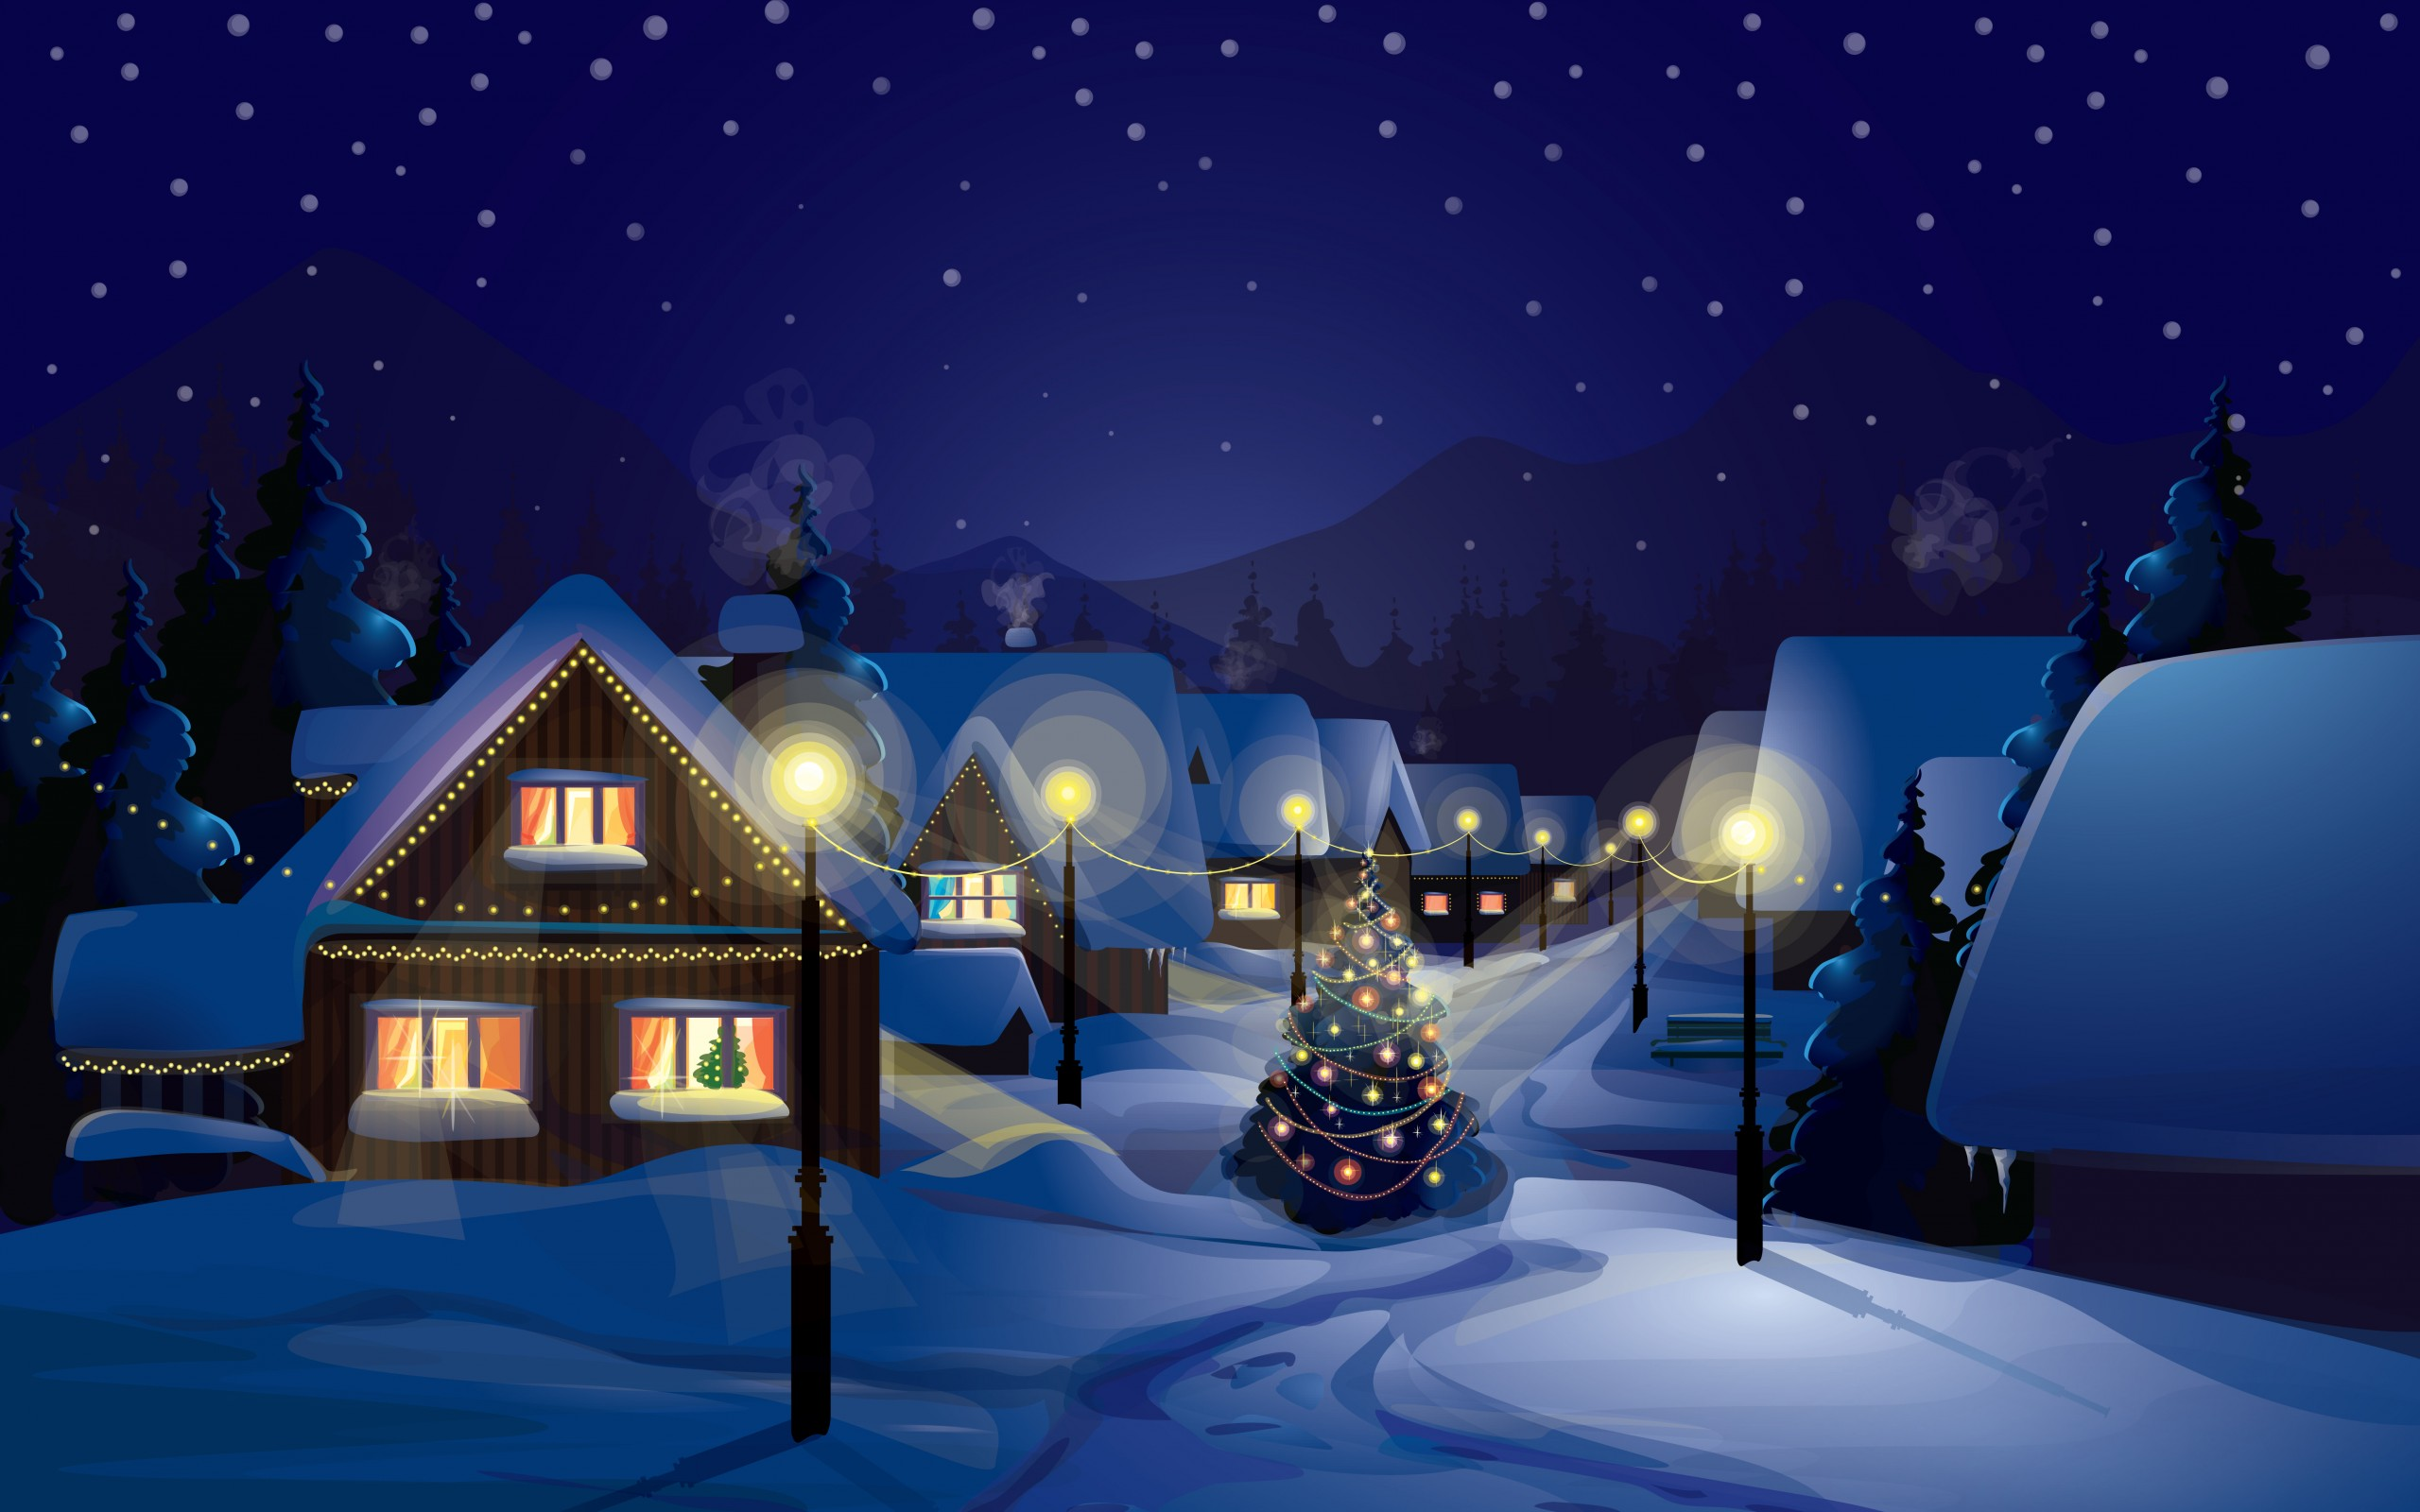 Christmas eve village 2560 x 1600 download close